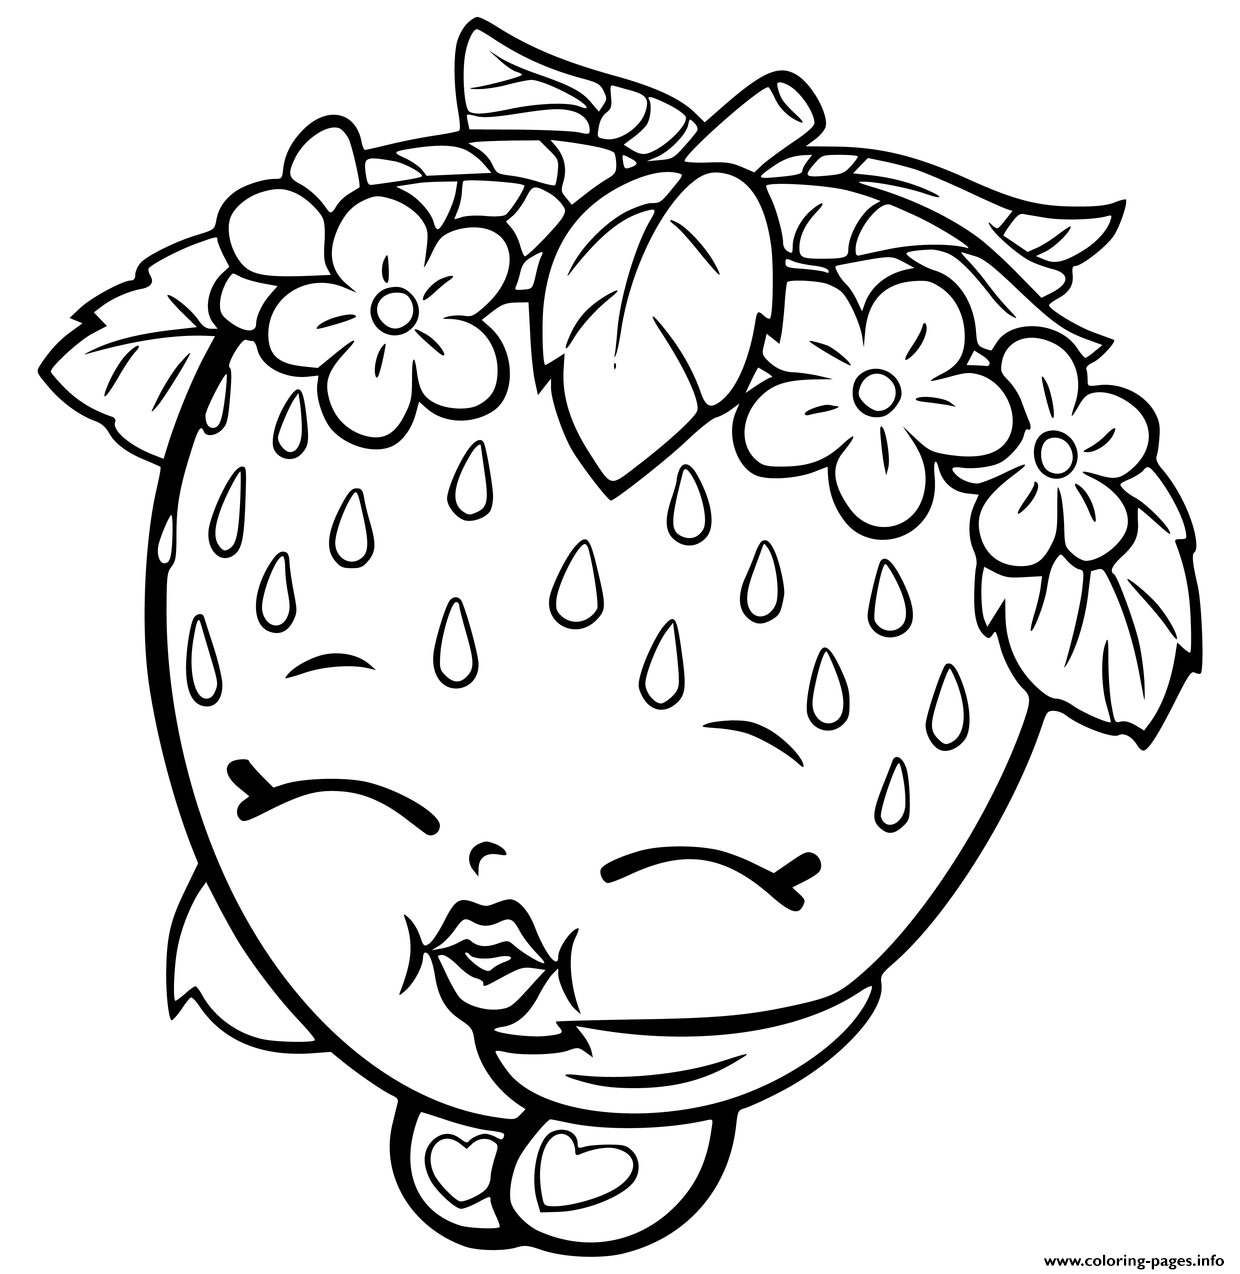 Print shopkins strawberry coloring pages (With images ...